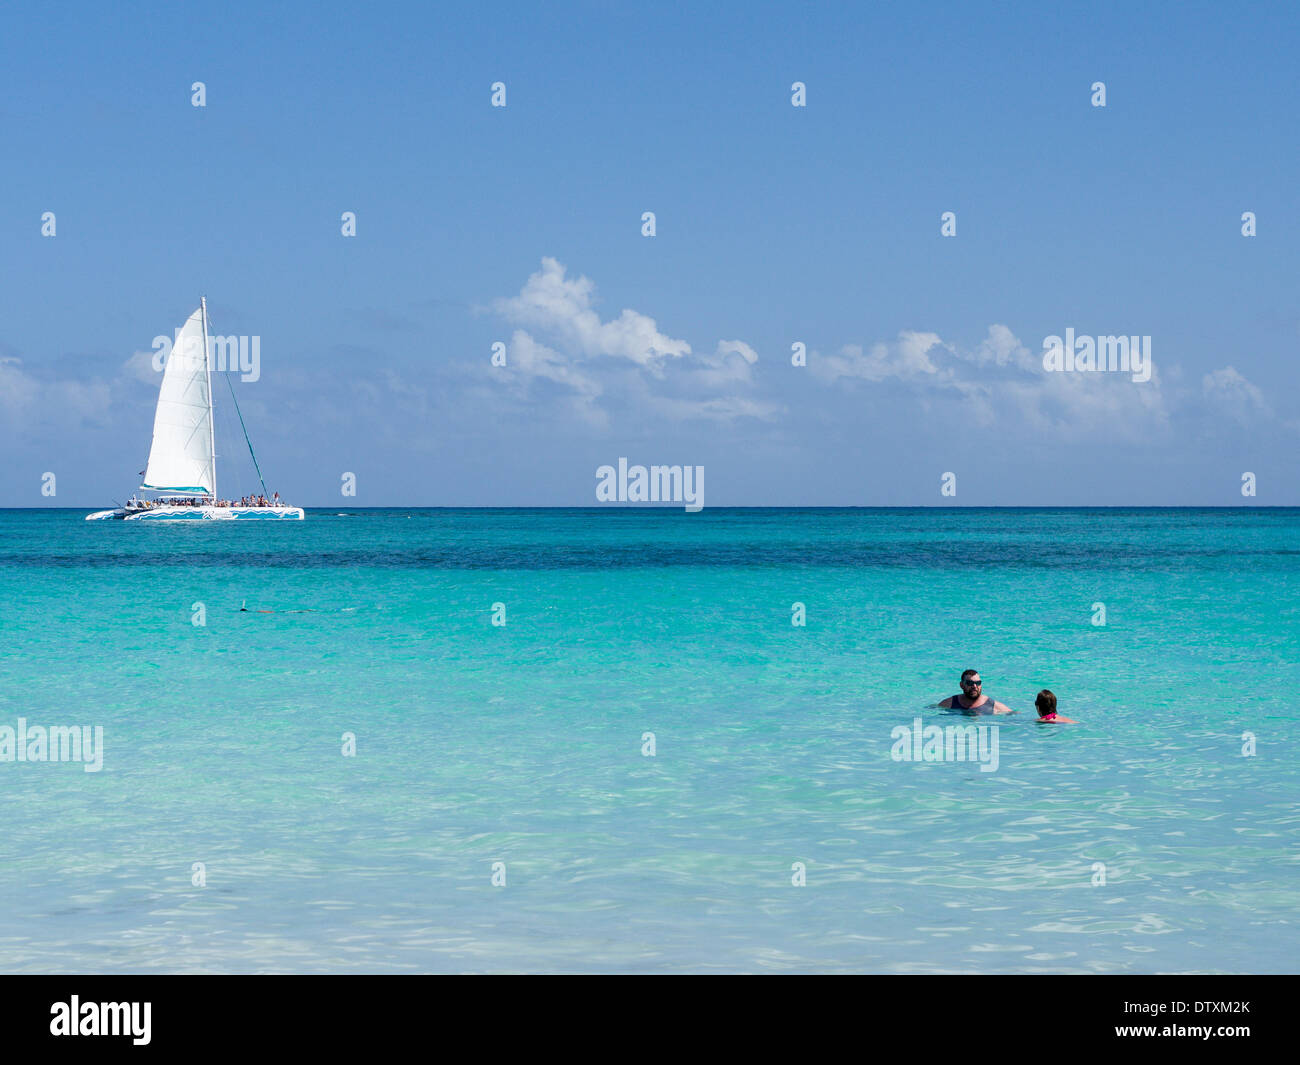 Swimming, snorkeling, sailing at Tulum Beach. The calm blue waters of Tulum beach with swimmers, snorkeler and a snorkel boat - Stock Image